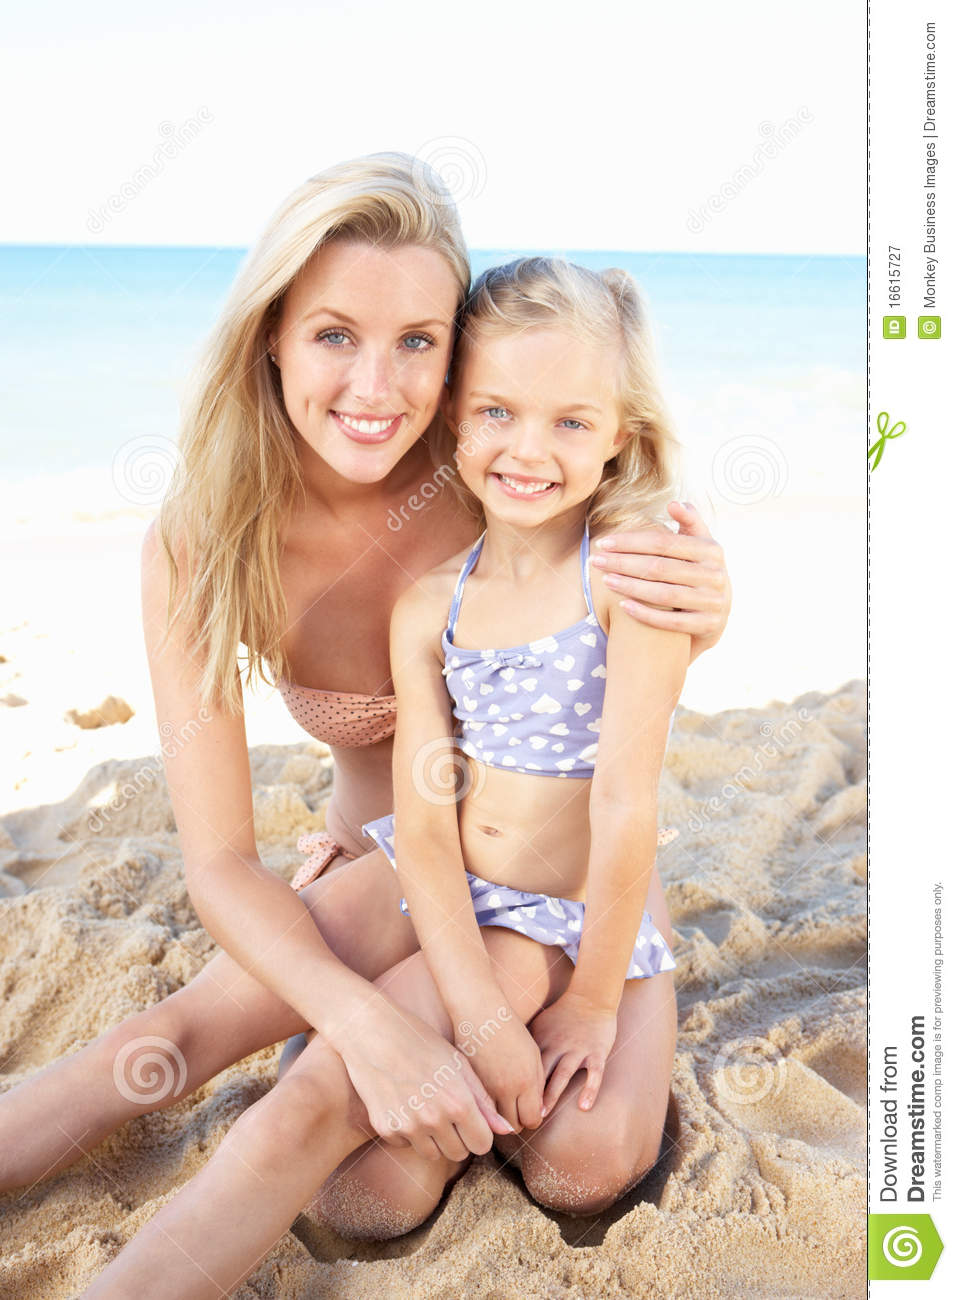 Understand you. Free pictures of nude mothers and daughters infinitely